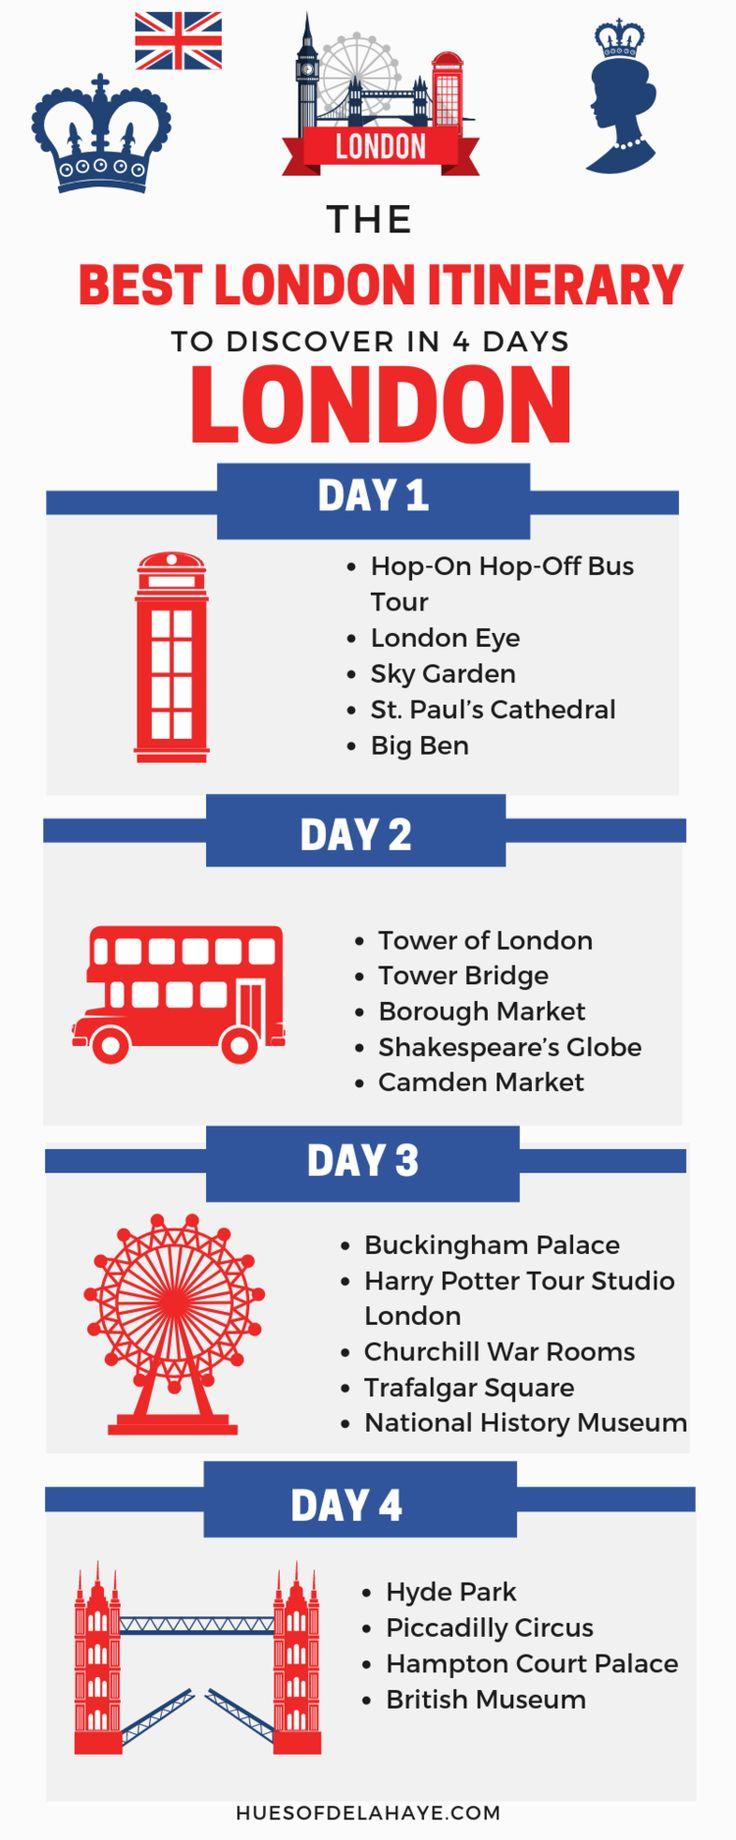 4 Day London Itinerary: How To Spend An Epic 4 Day…